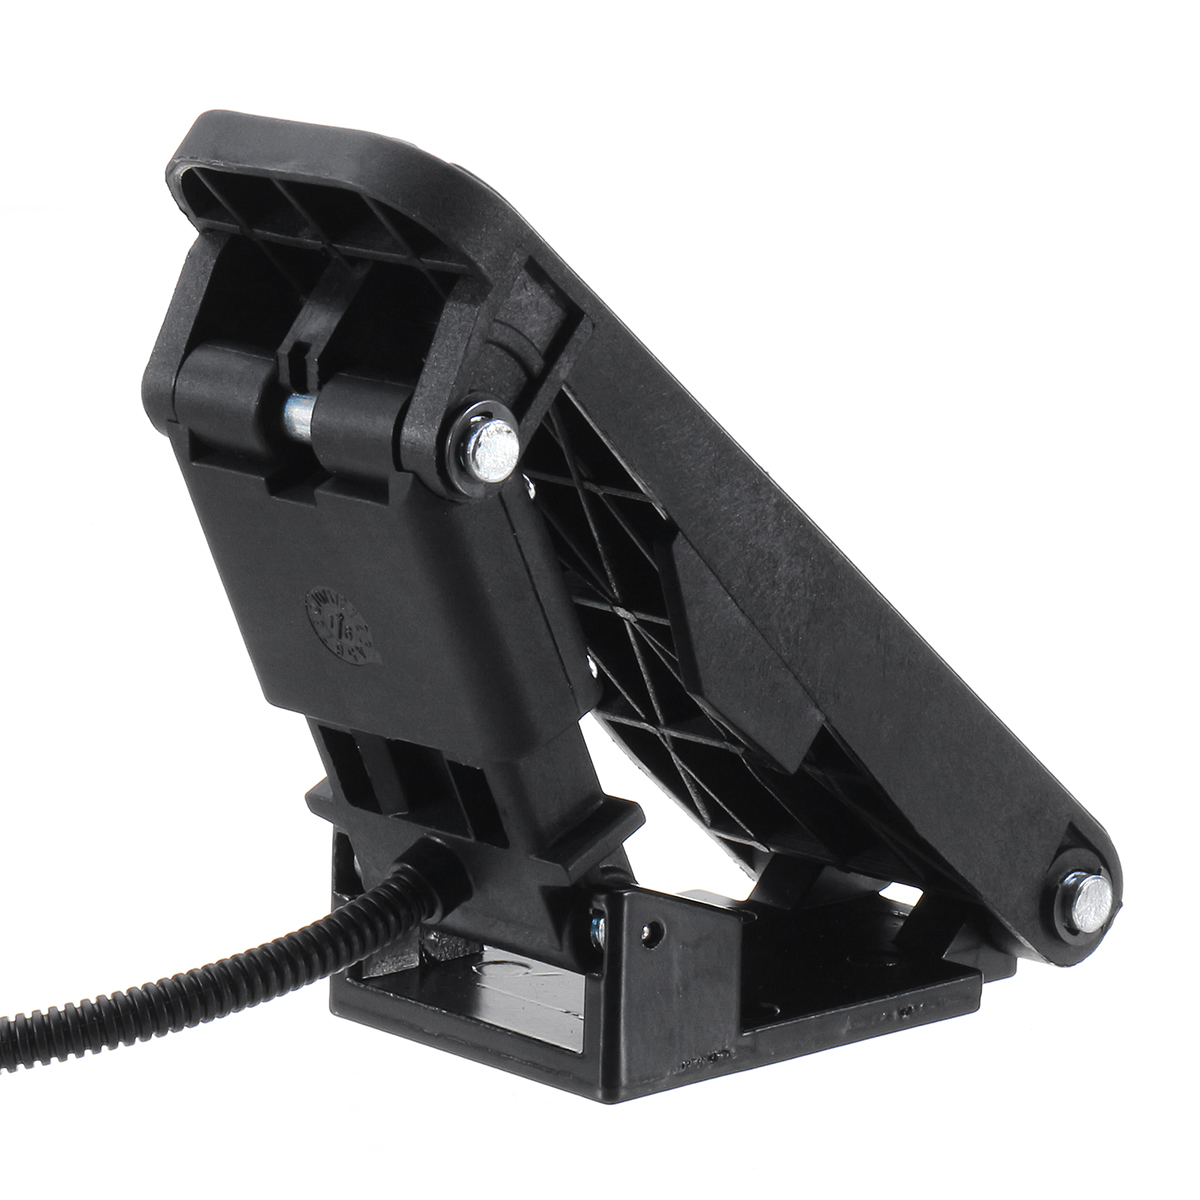 Foot Throttle Speed Control Accelerator Pedals For Electric Scooter Golf Cart ATV Quad Pit Bike